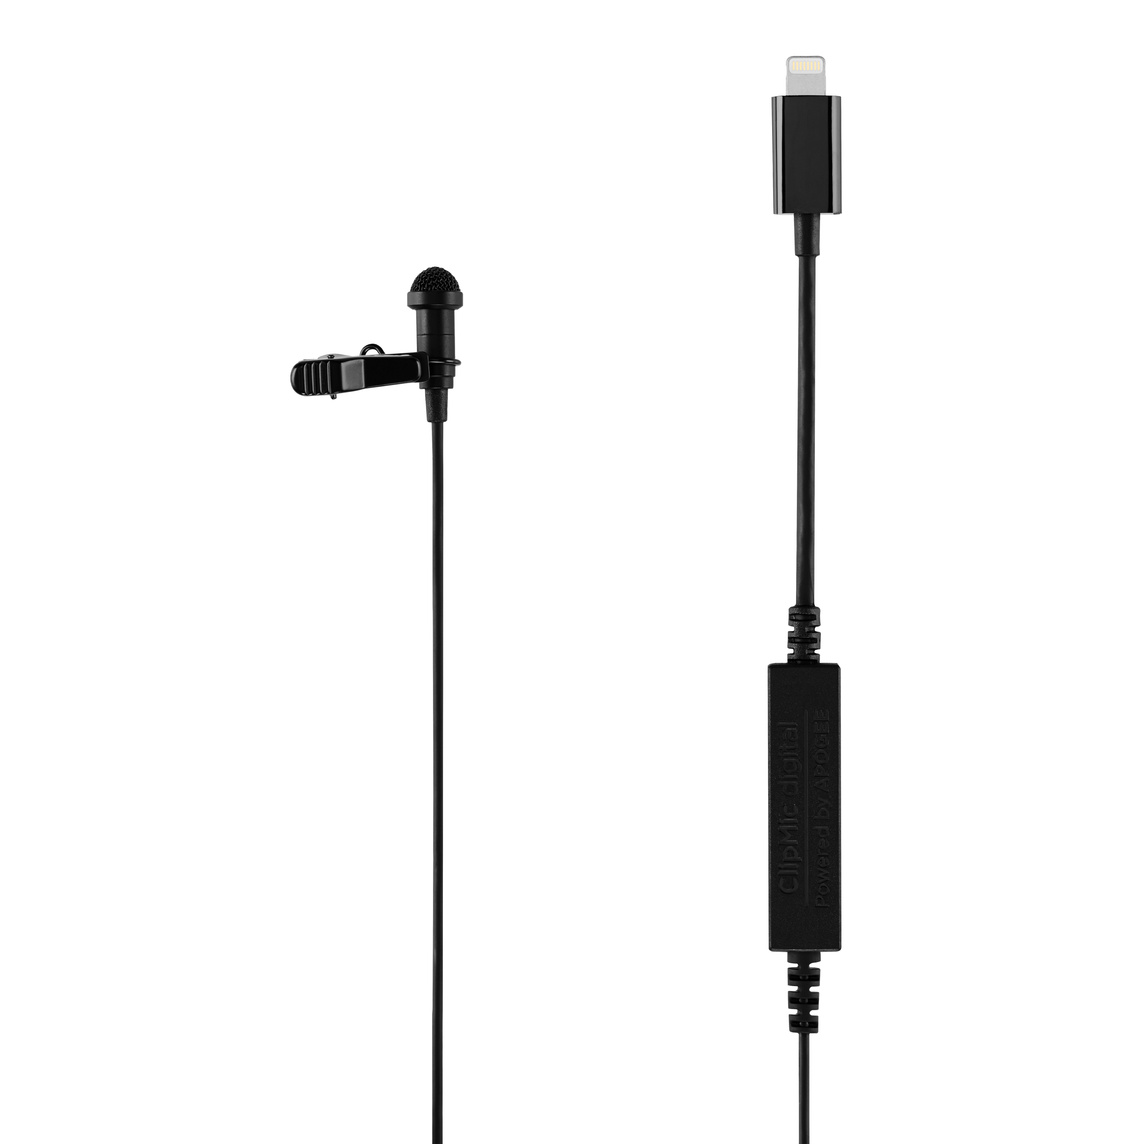 Apogee Mic is a flexible Mac and iOS microphone. Apogee, the